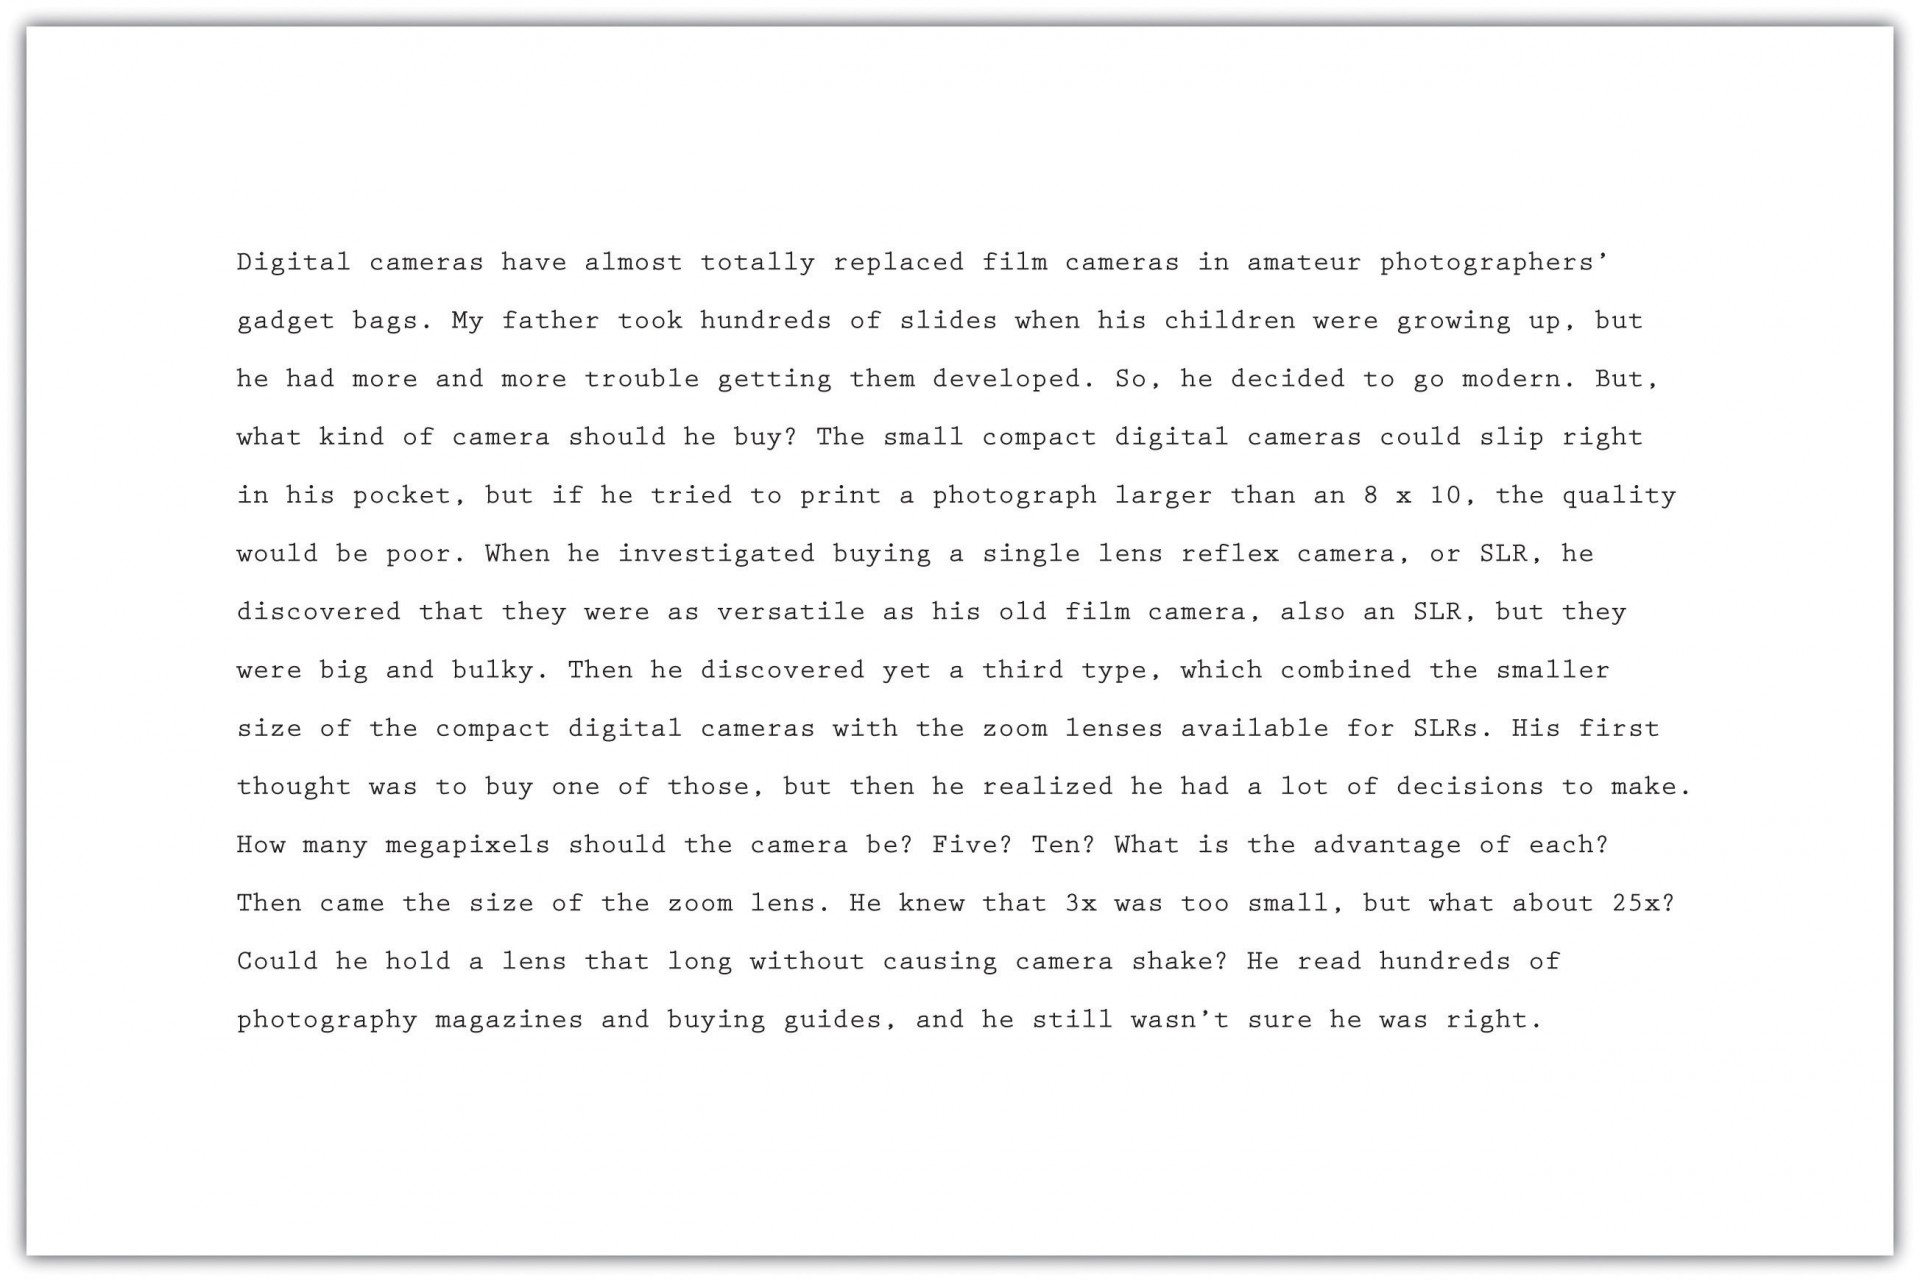 009 Essay Example Where Do You See Yourself In Sensational 10 Years U 1920